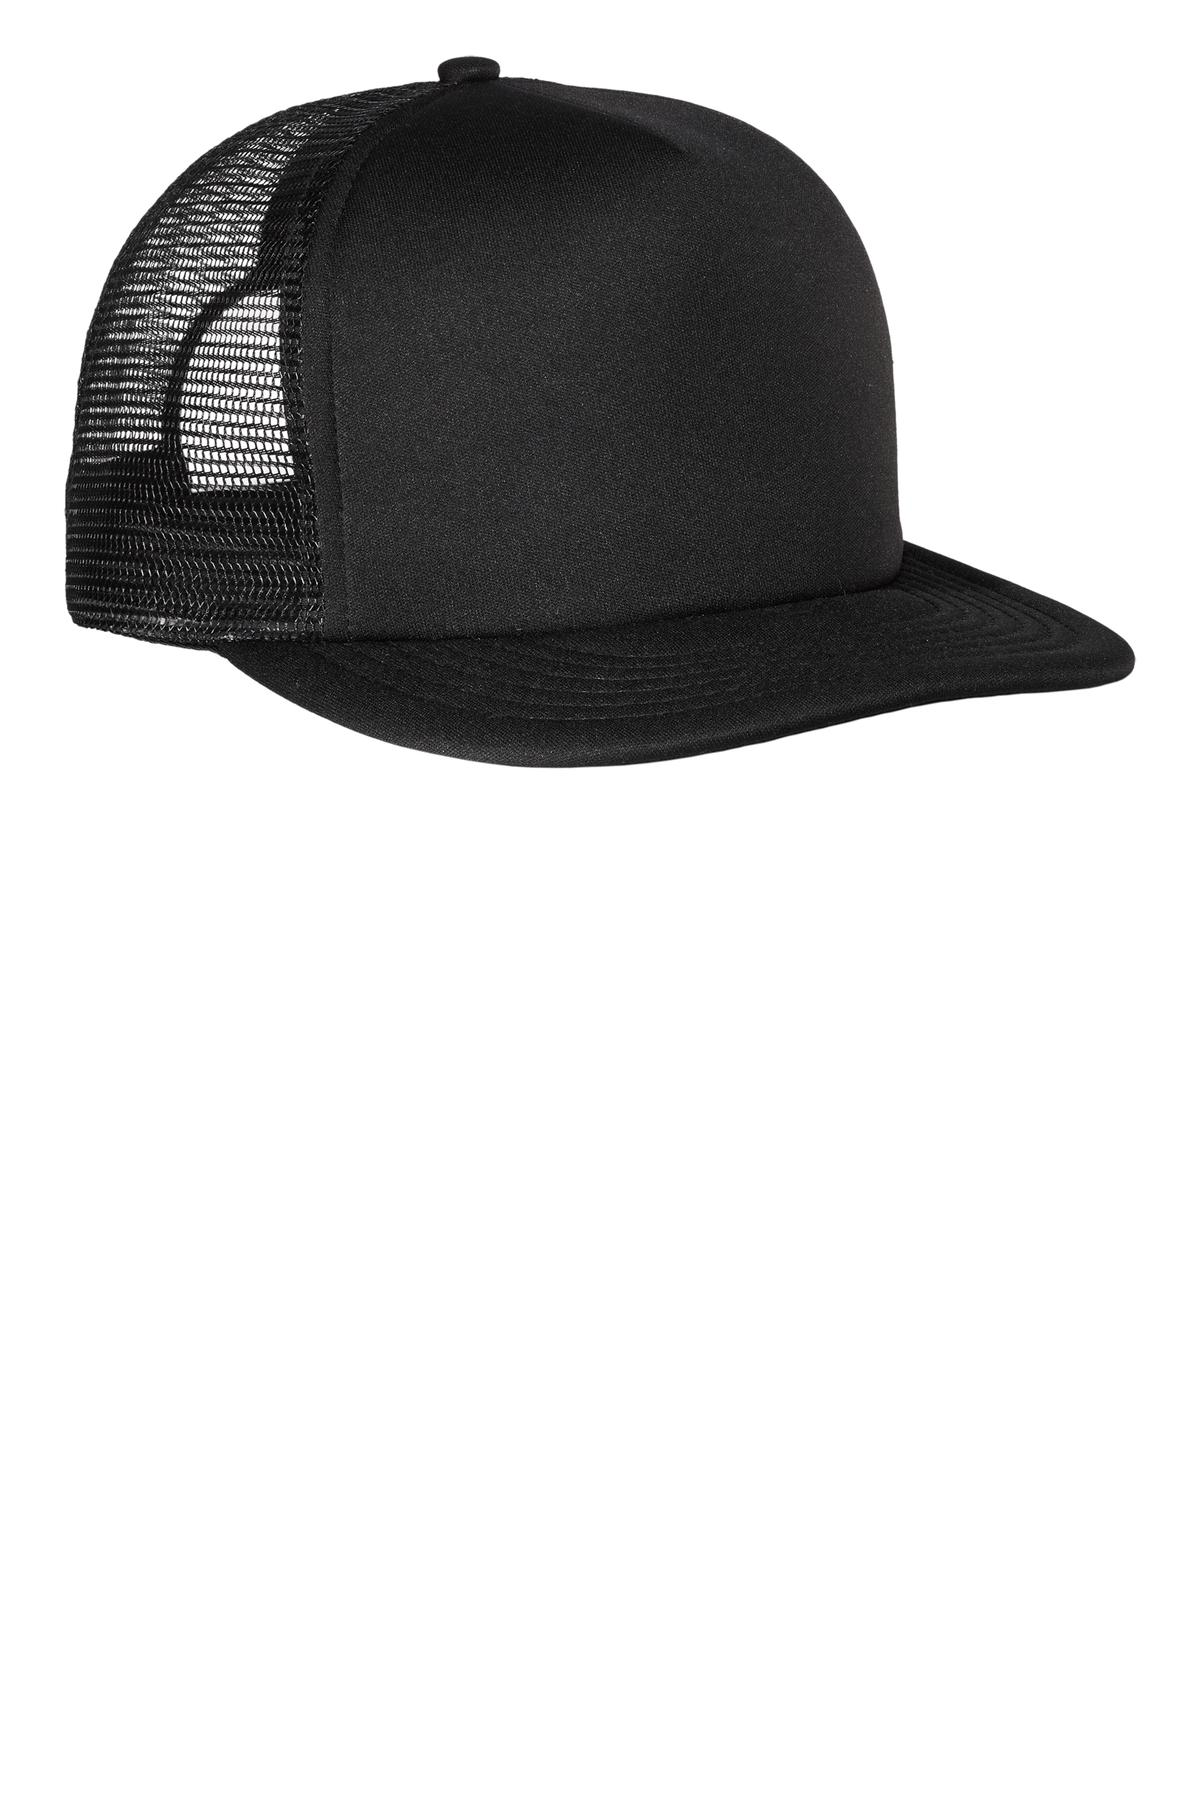 District ®  Flat Bill Snapback Trucker Cap. DT624 - Black